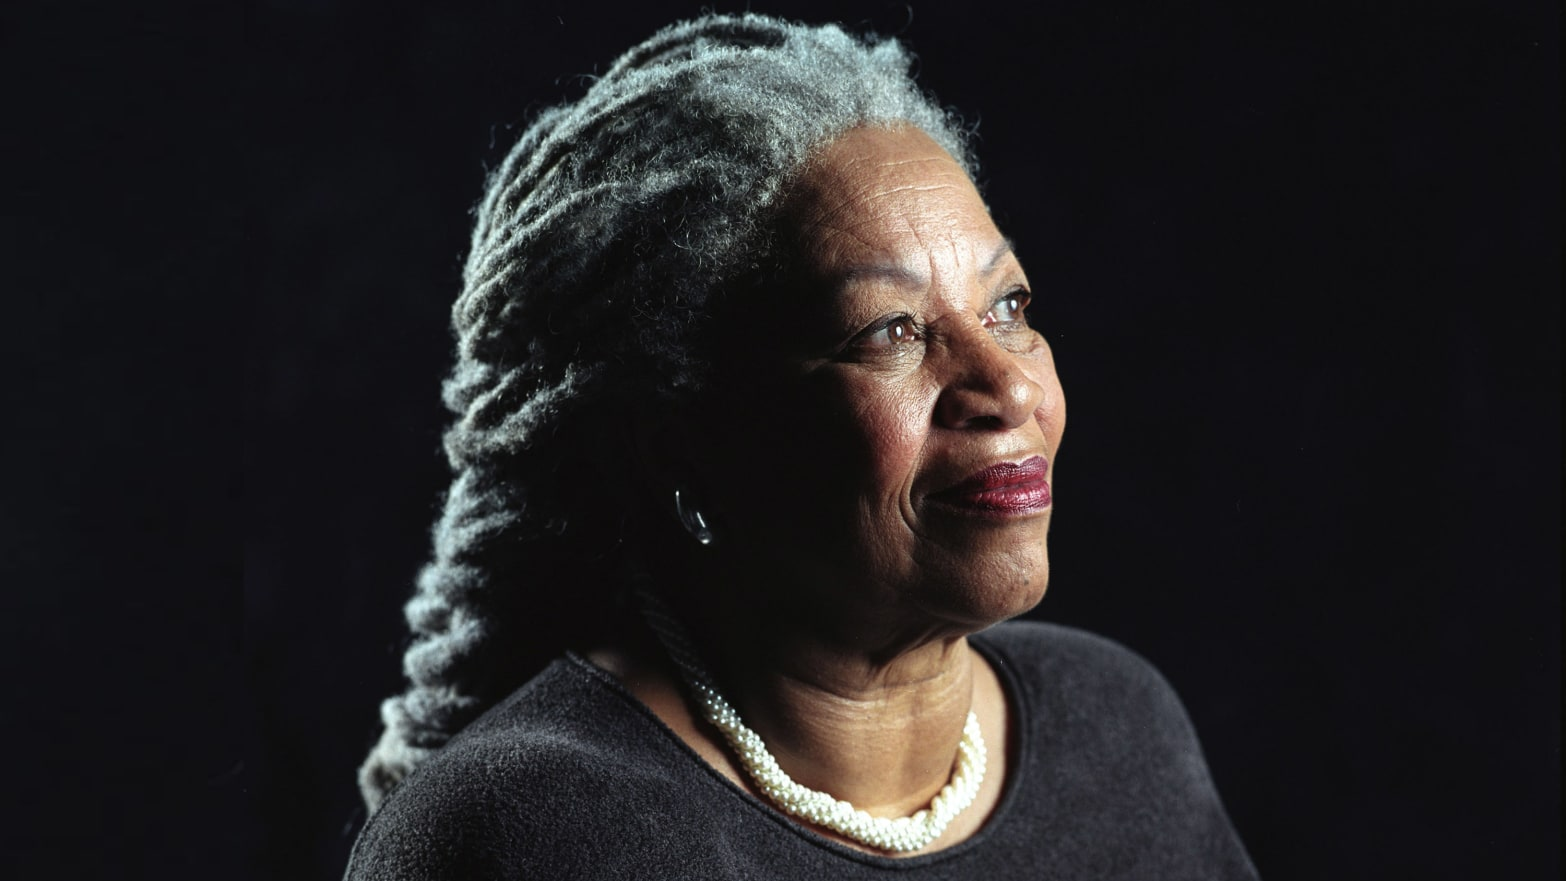 Toni Morrison: From 'The Bluest Eye' to 'Beloved,' the Woman Who Taught Me That I'm Not Alone